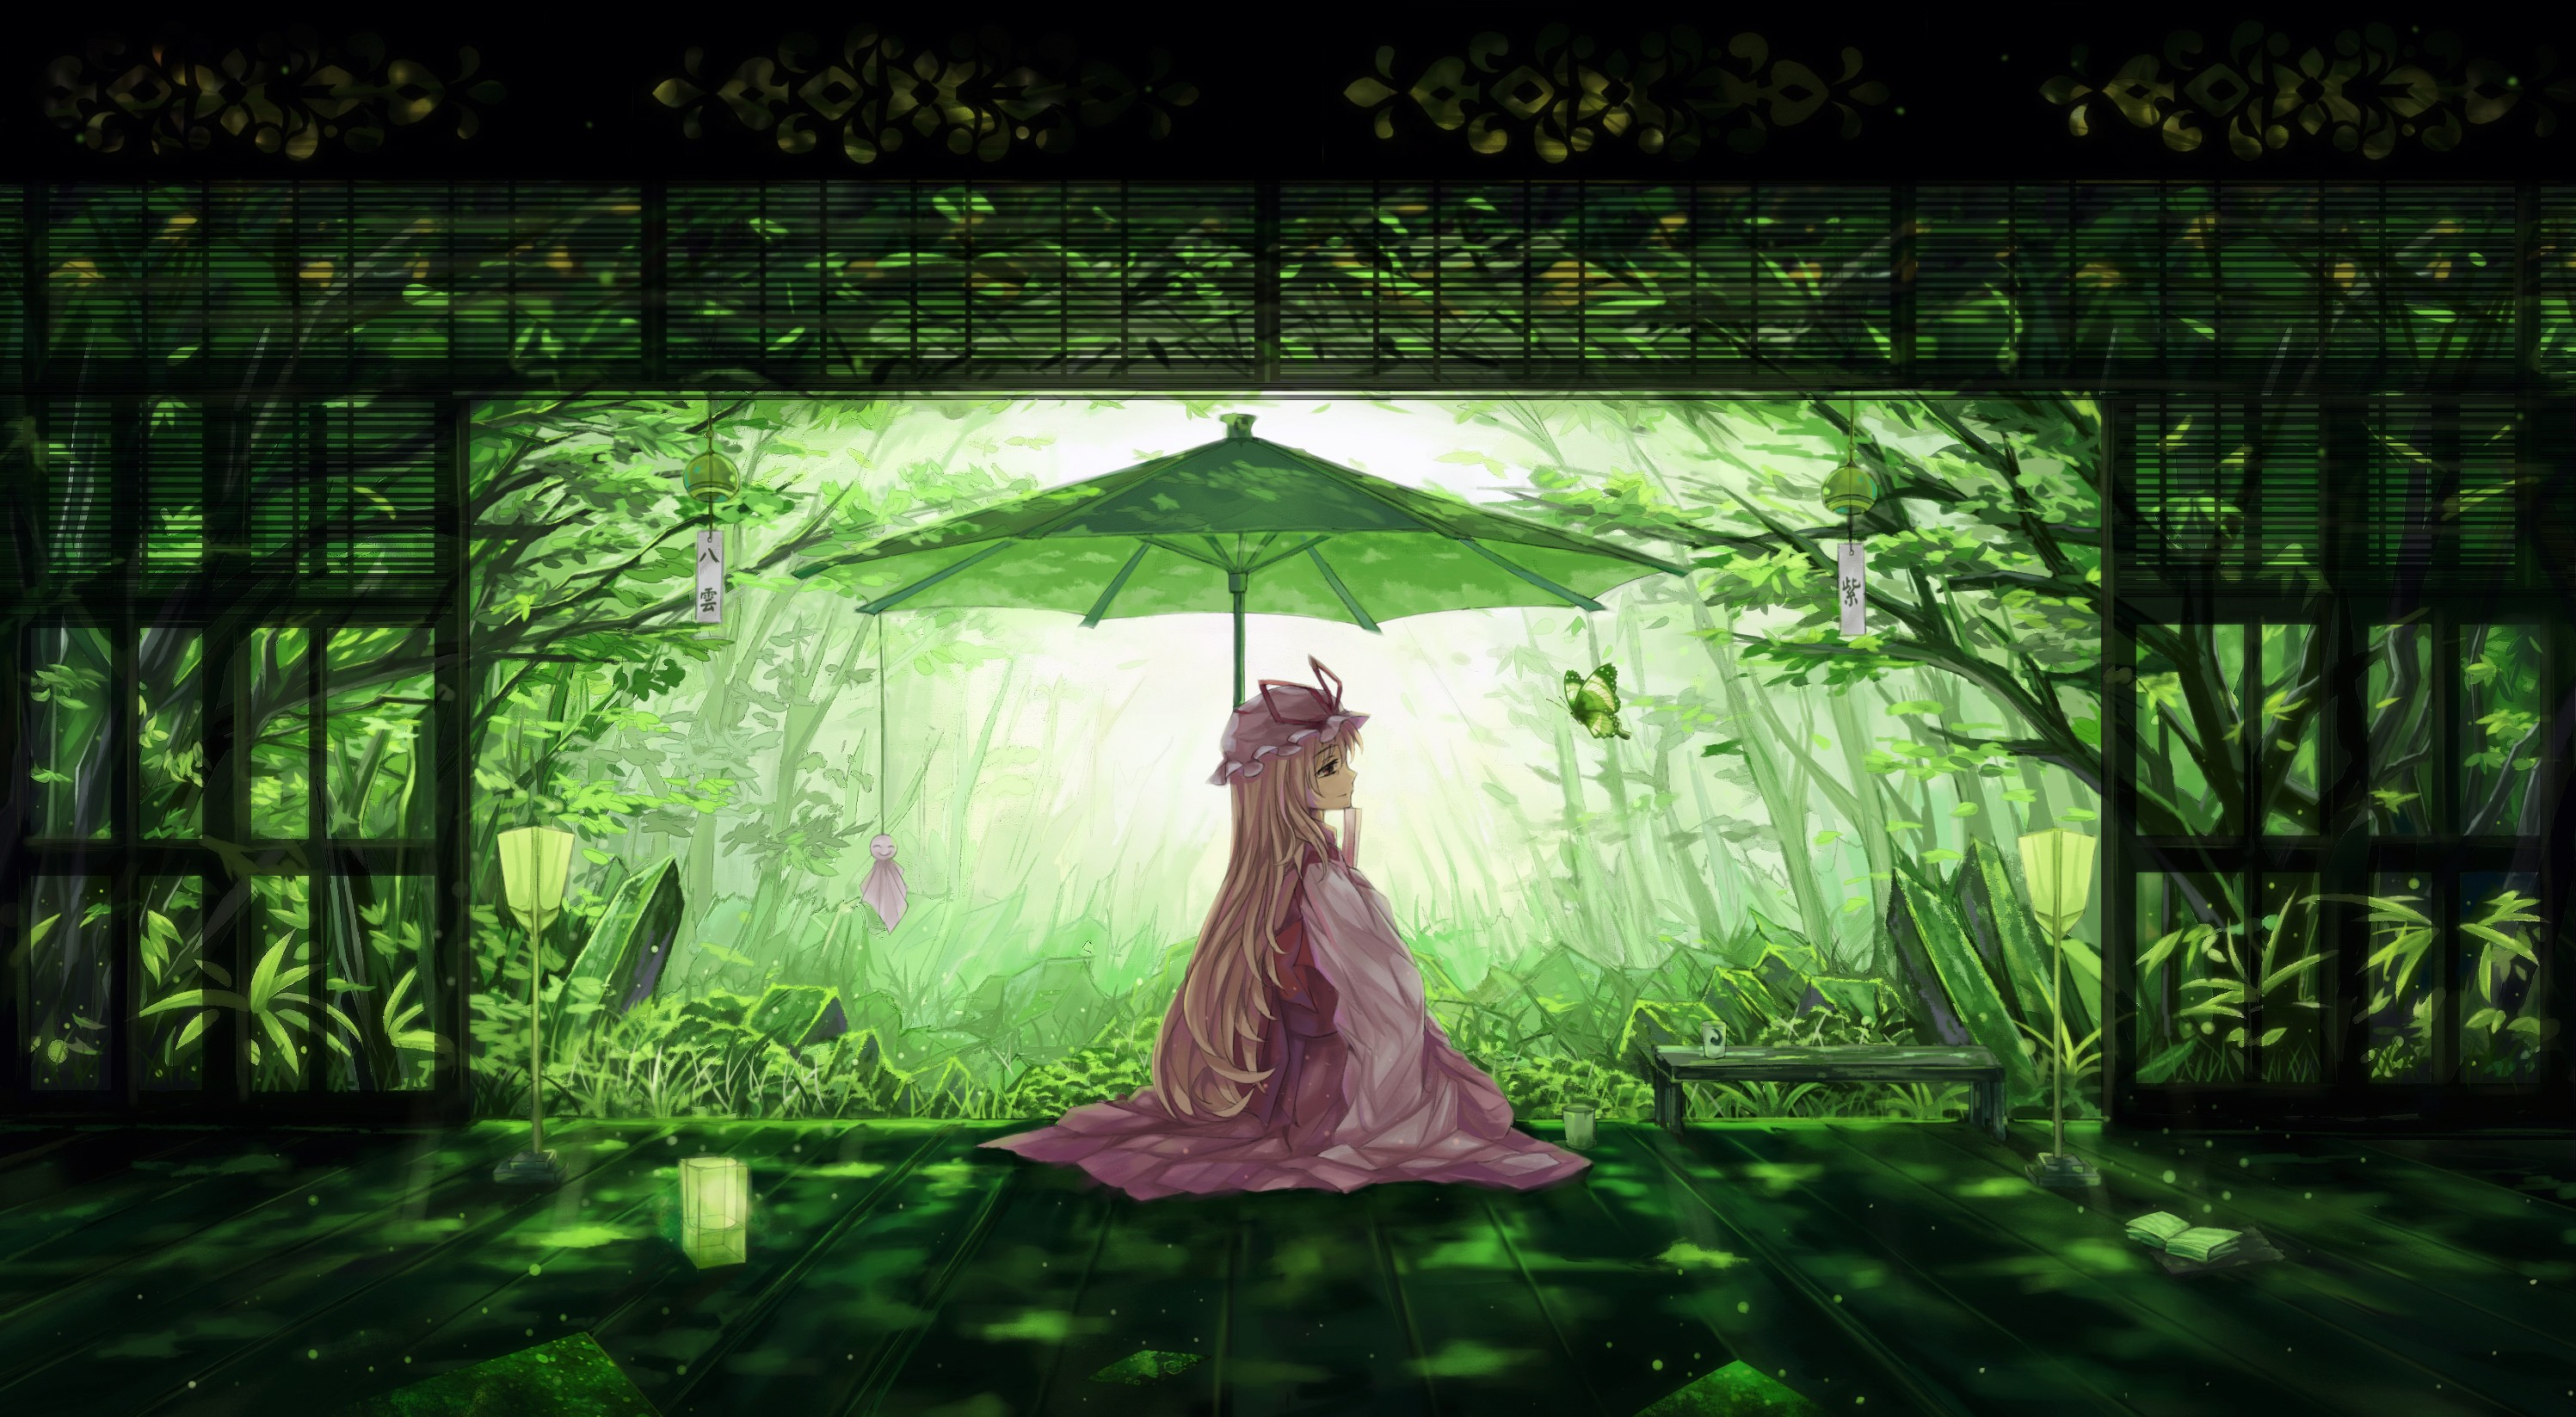 Anime 2994x1647 anime girls Touhou blonde long hair Japanese clothes Yakumo Yukari books trees parasol